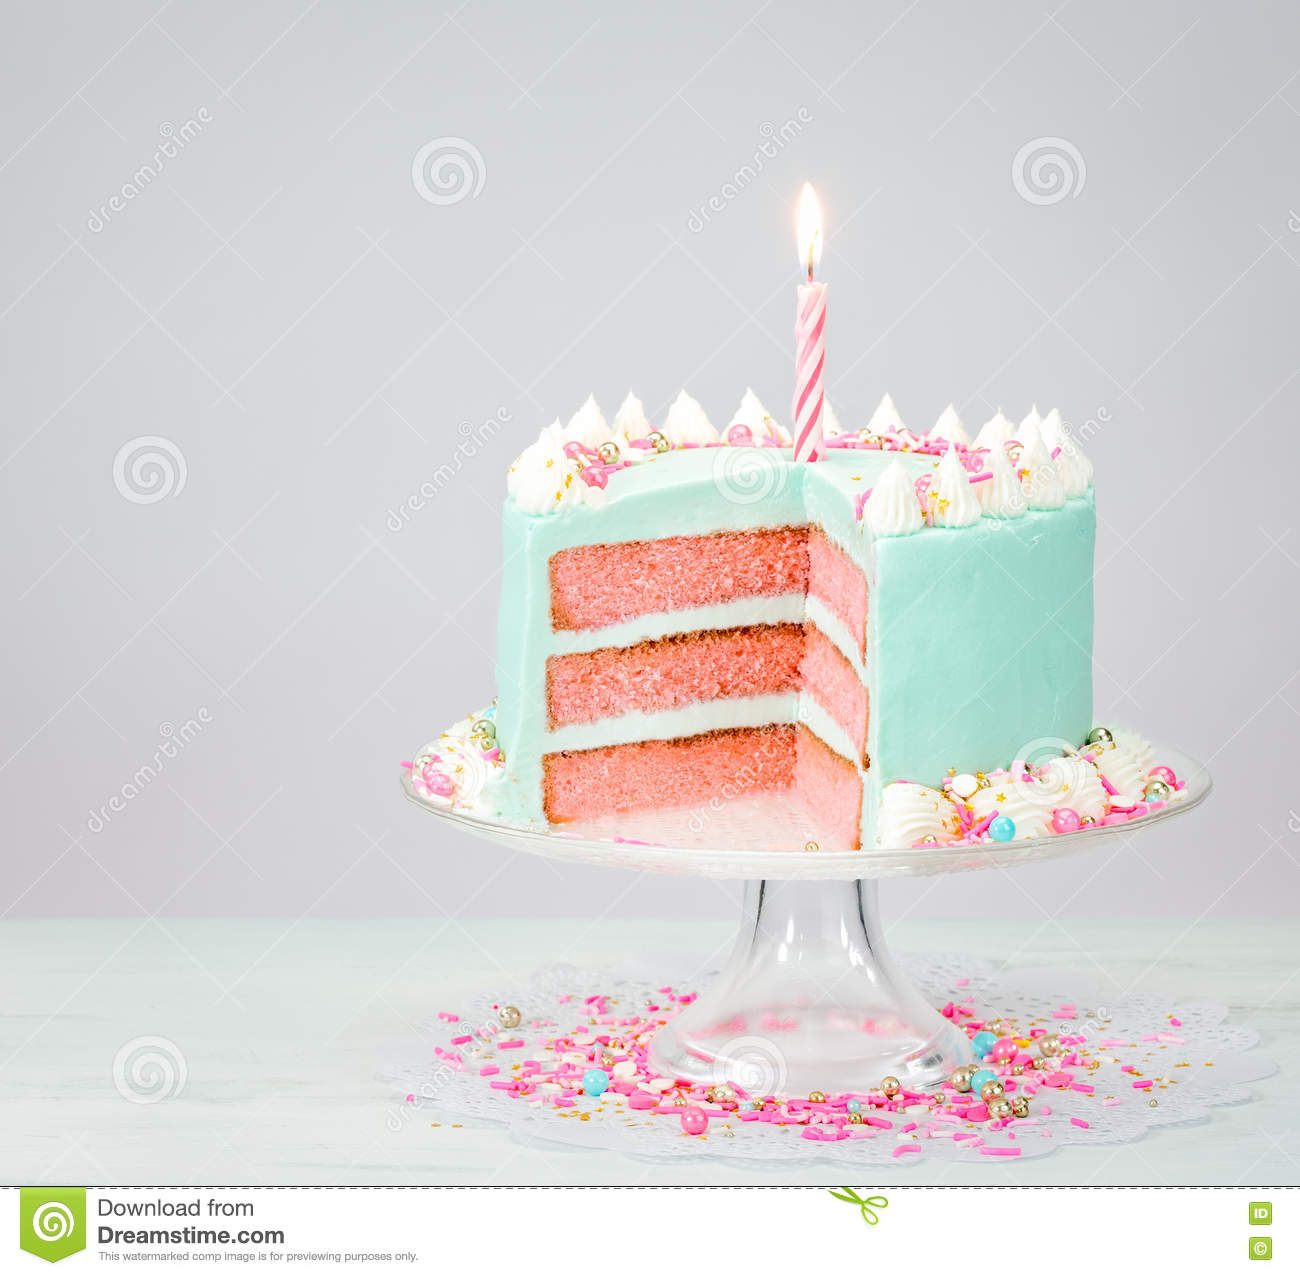 Pastel Blue Birthday Cake Over White Background With Pink Layers And Sprinkles